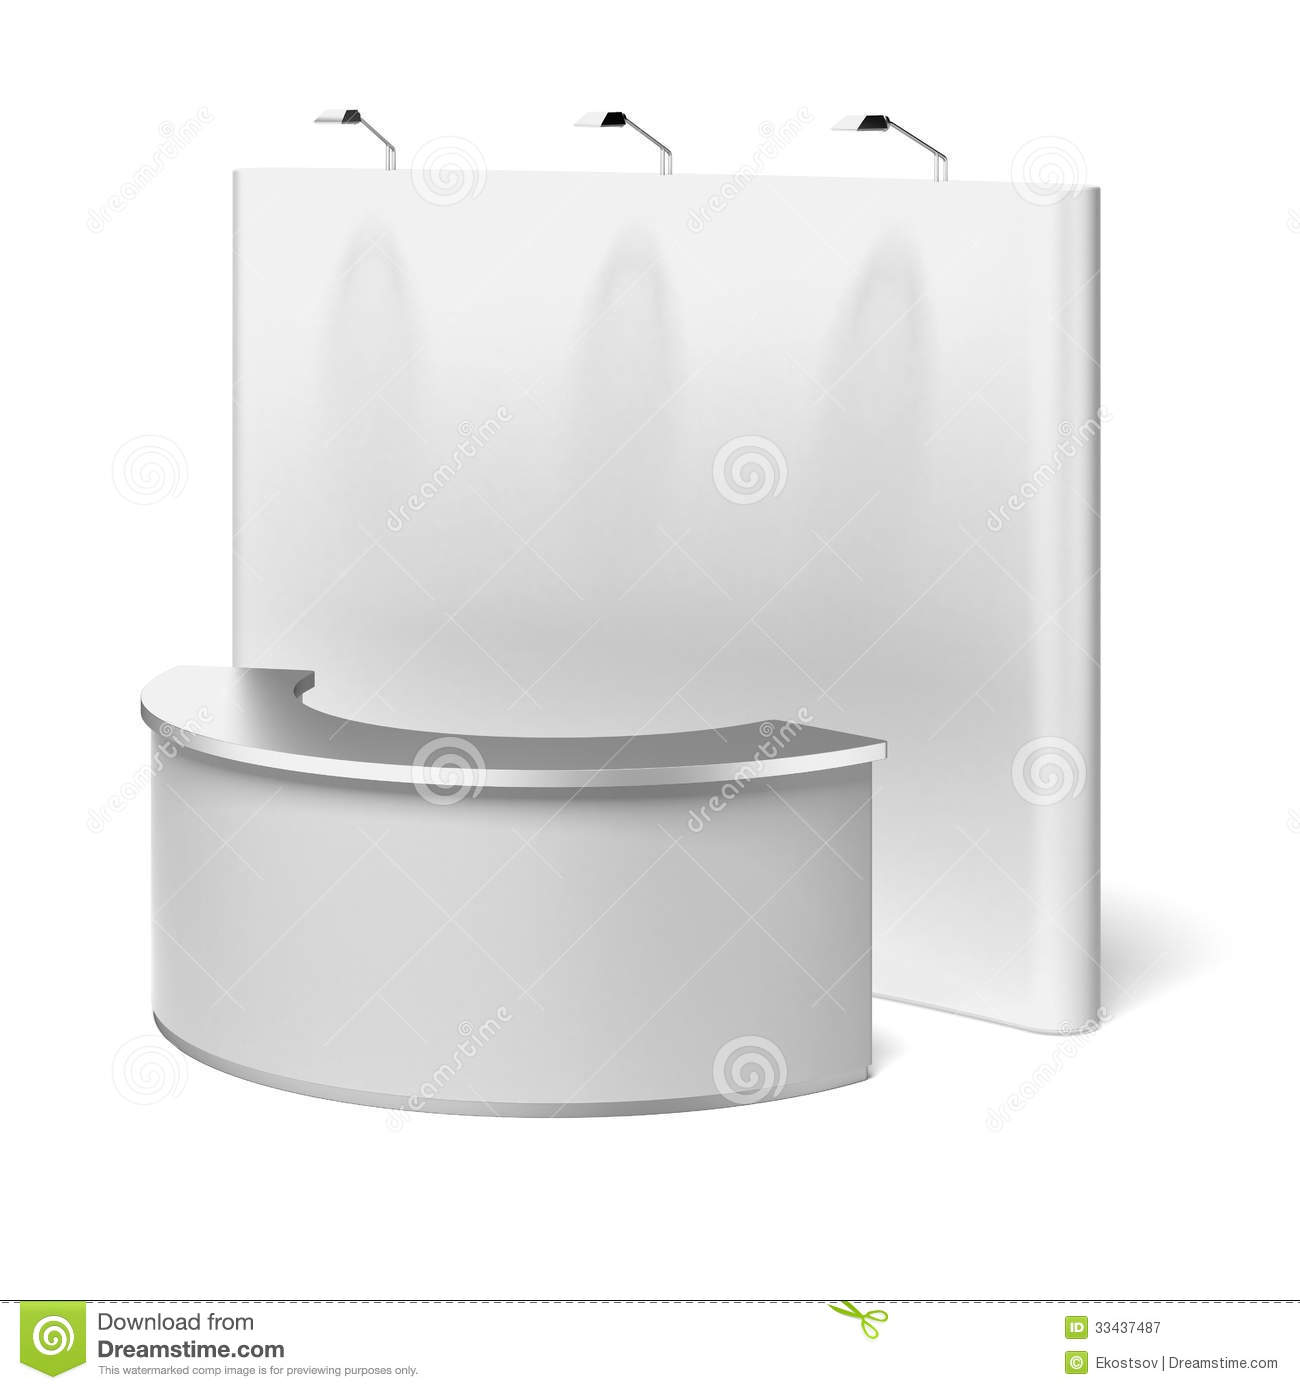 Exhibition Booth Template Free : Blank trade show booth stock illustration of